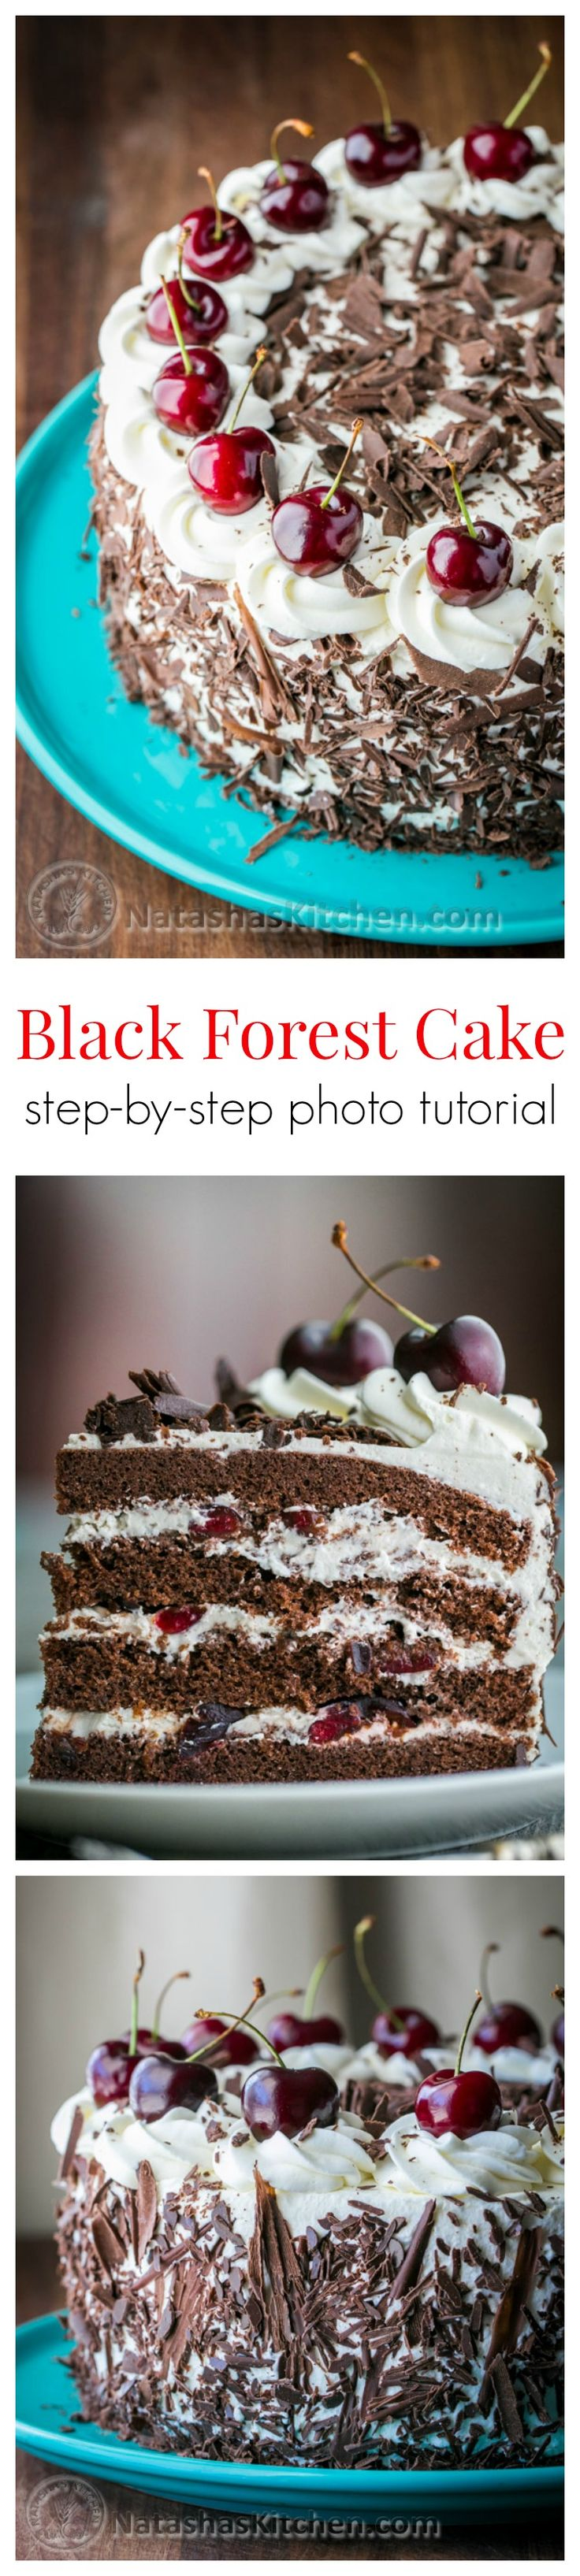 Black Forest Cake - A famous German chocolate cake with 4 chocolatey layers, 1 lb of kirsch infused cherries and whipped cream. So good!